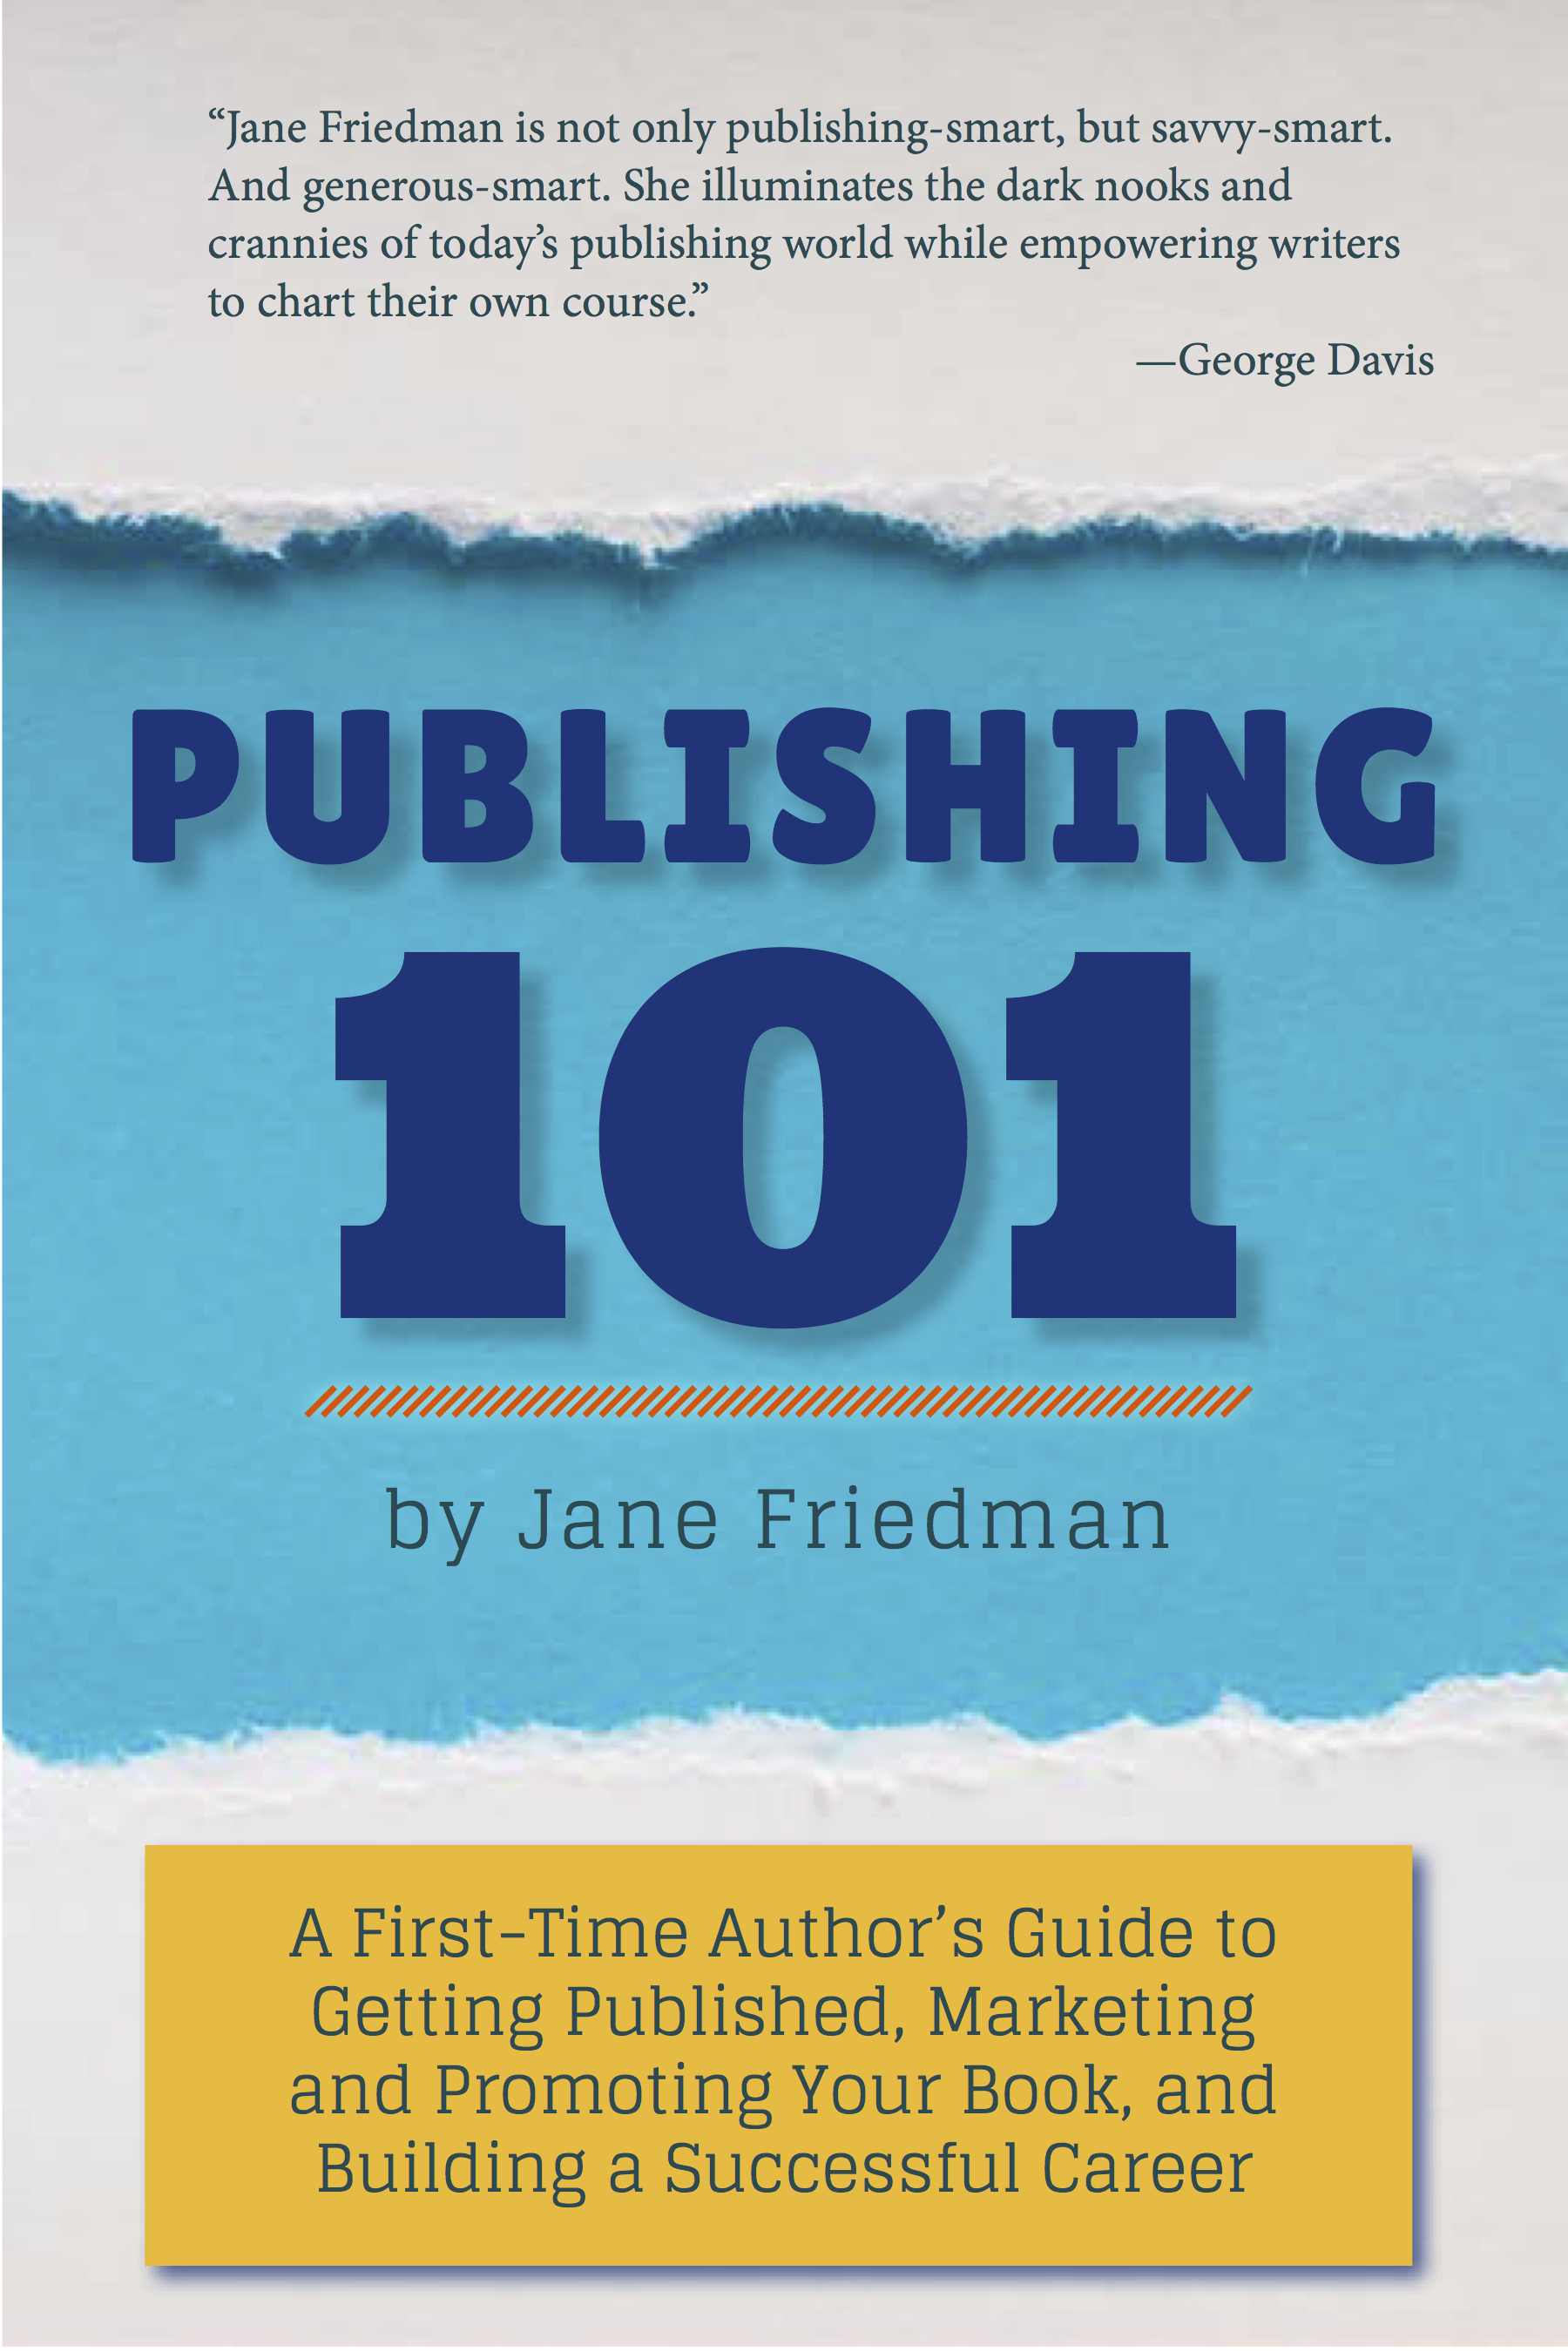 self-publish, indie pub, author, writer, Jane Friedman